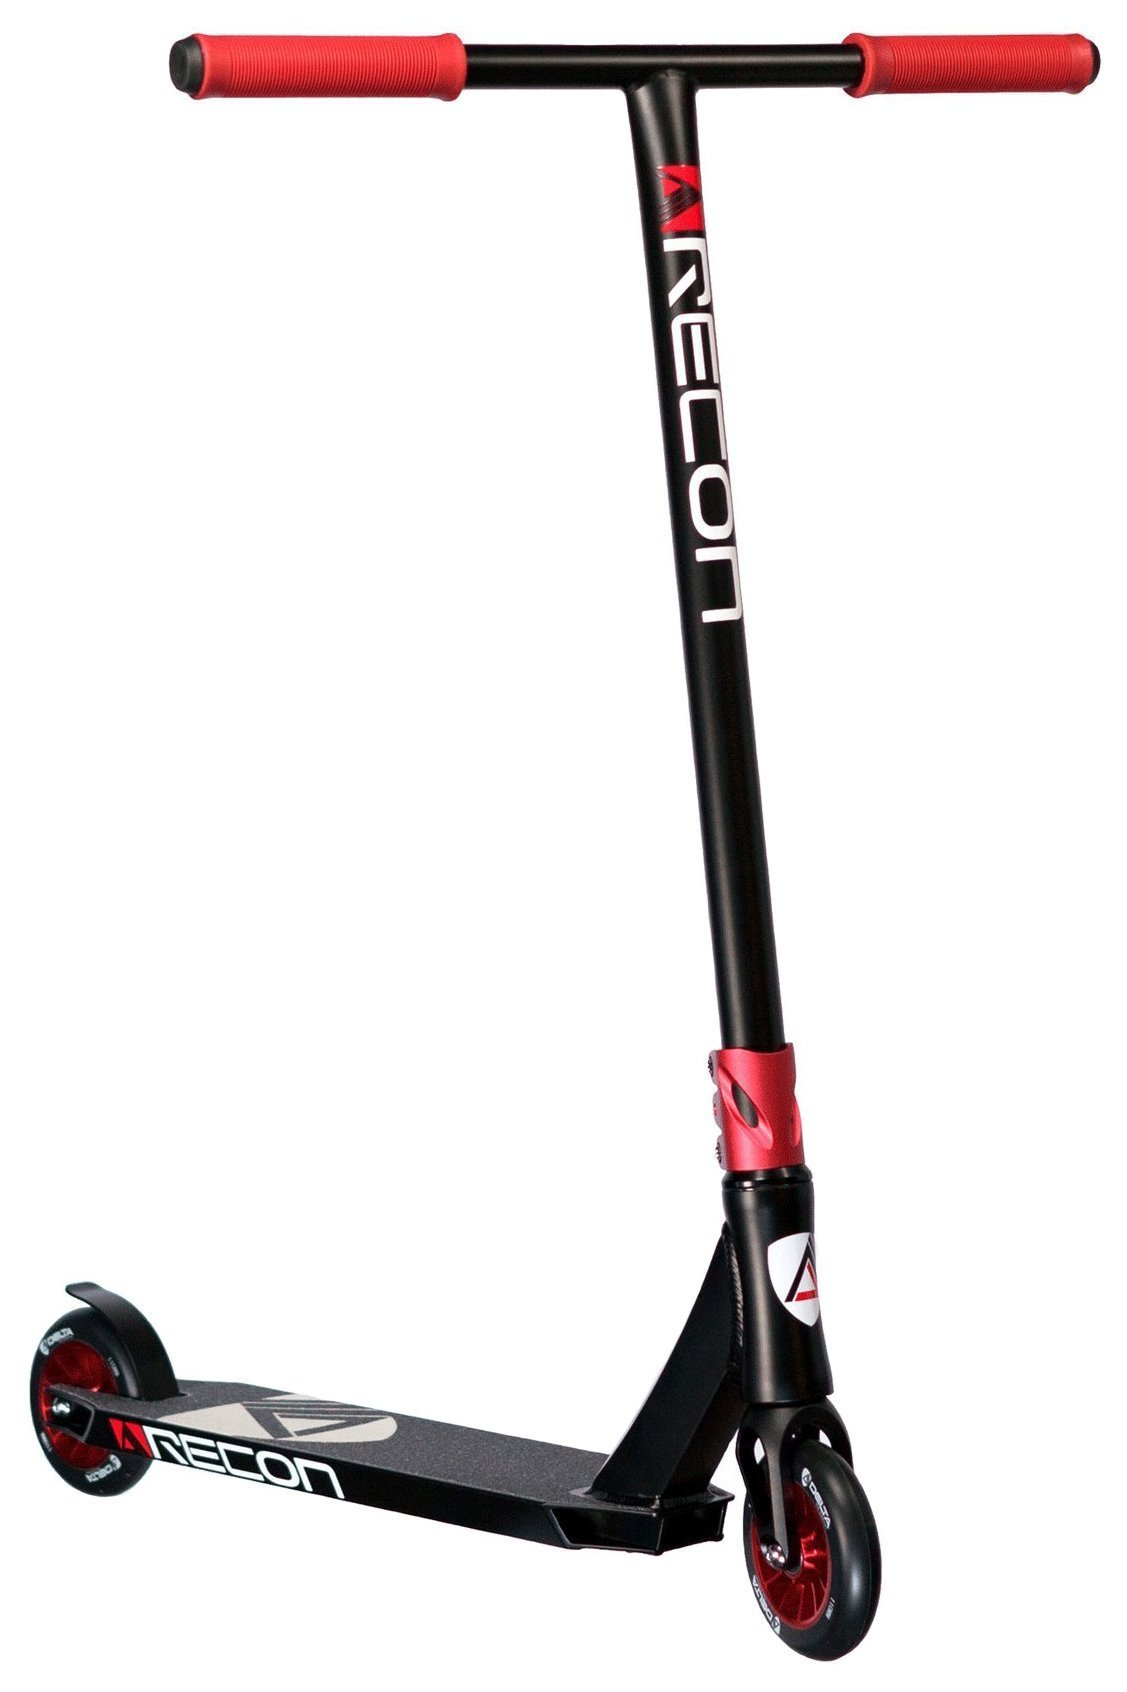 Delta Pro Scooters Recon Scooter, Red